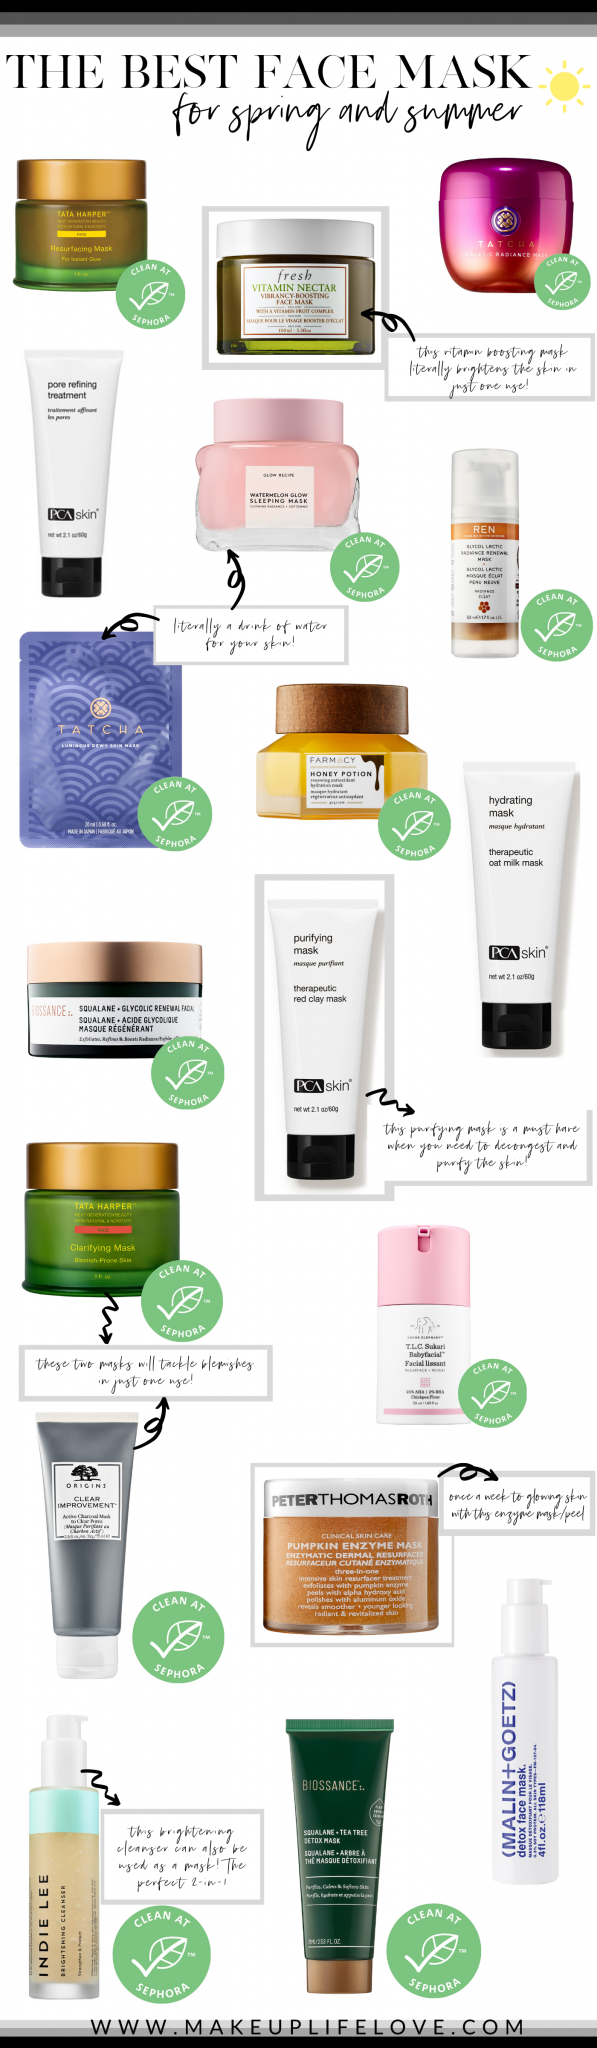 Looking for your favorite face mask for spring? Los Angeles Blogger Jamie Lews has you covered as she is rouding up her favorite face masks for spring here!